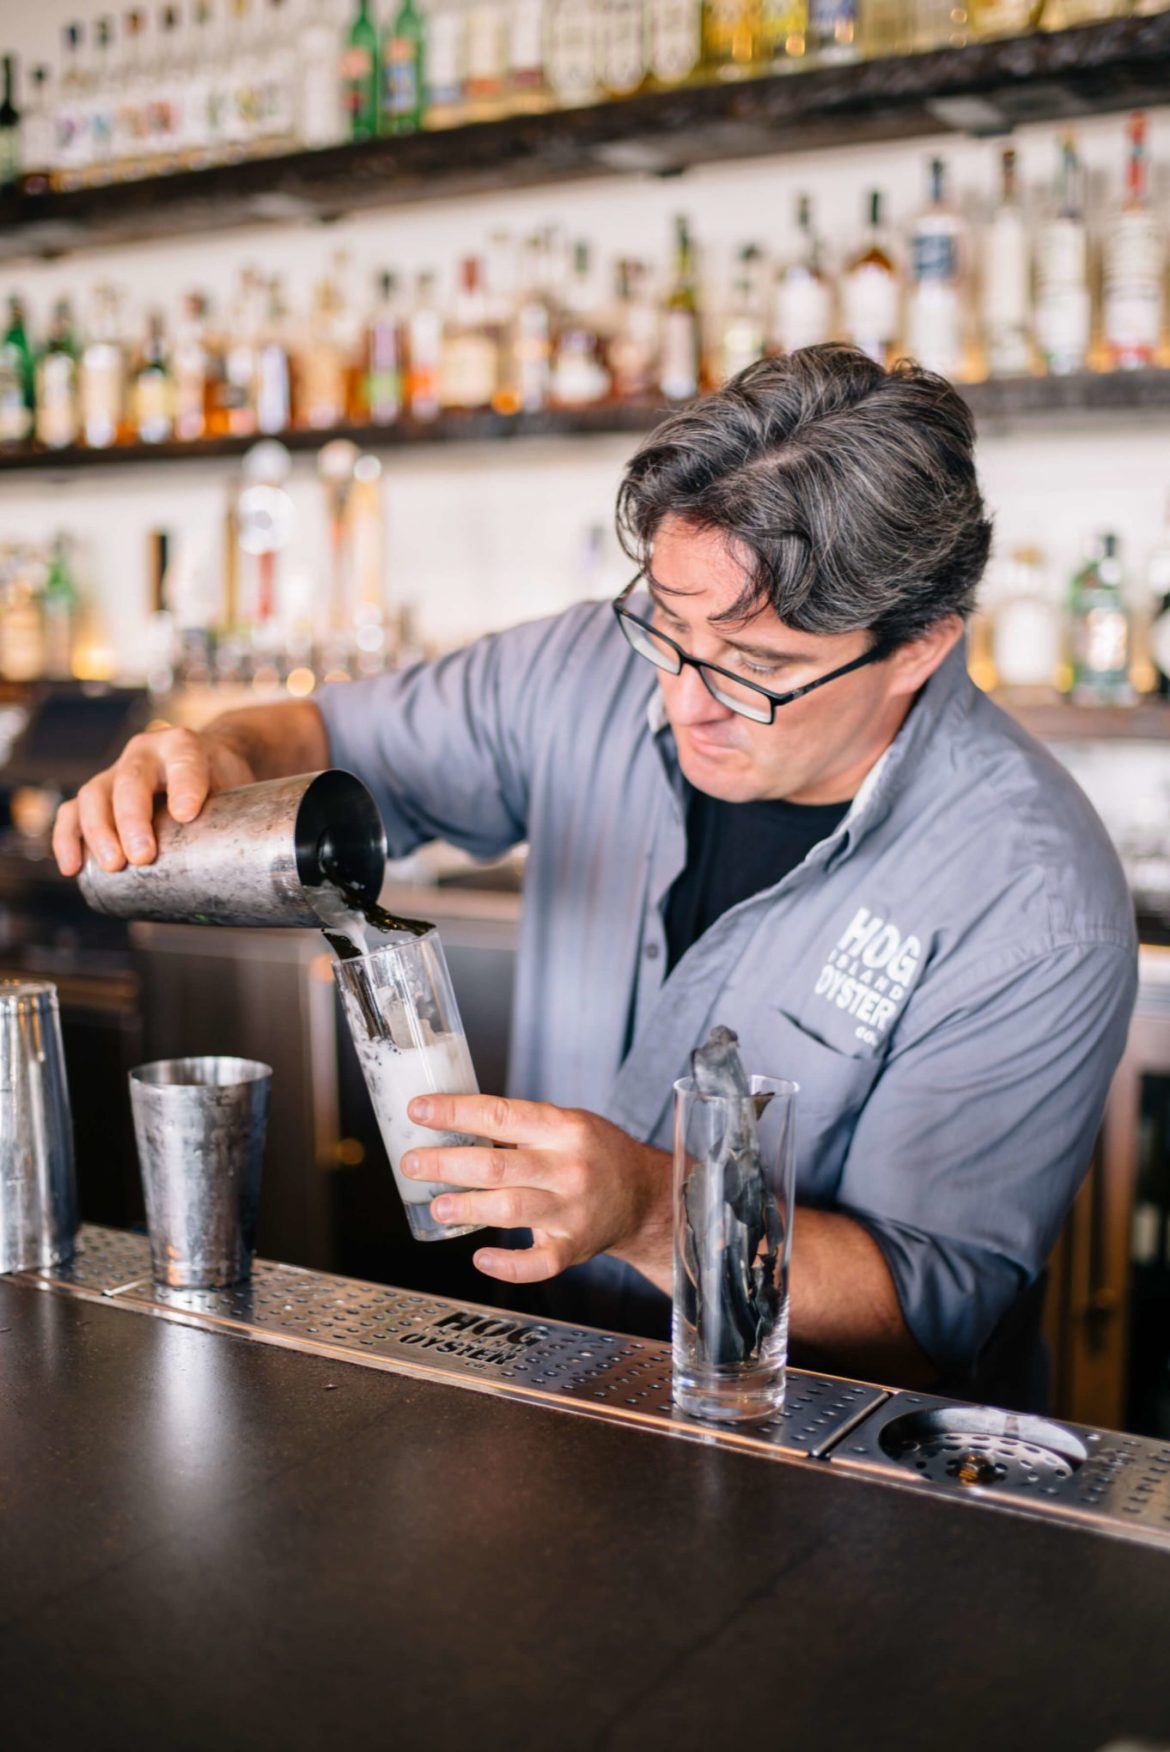 The Taste Edit loves to make the Hog Island Sea collins cocktail from San Francisco with Sea Gin, lime and seaweed.